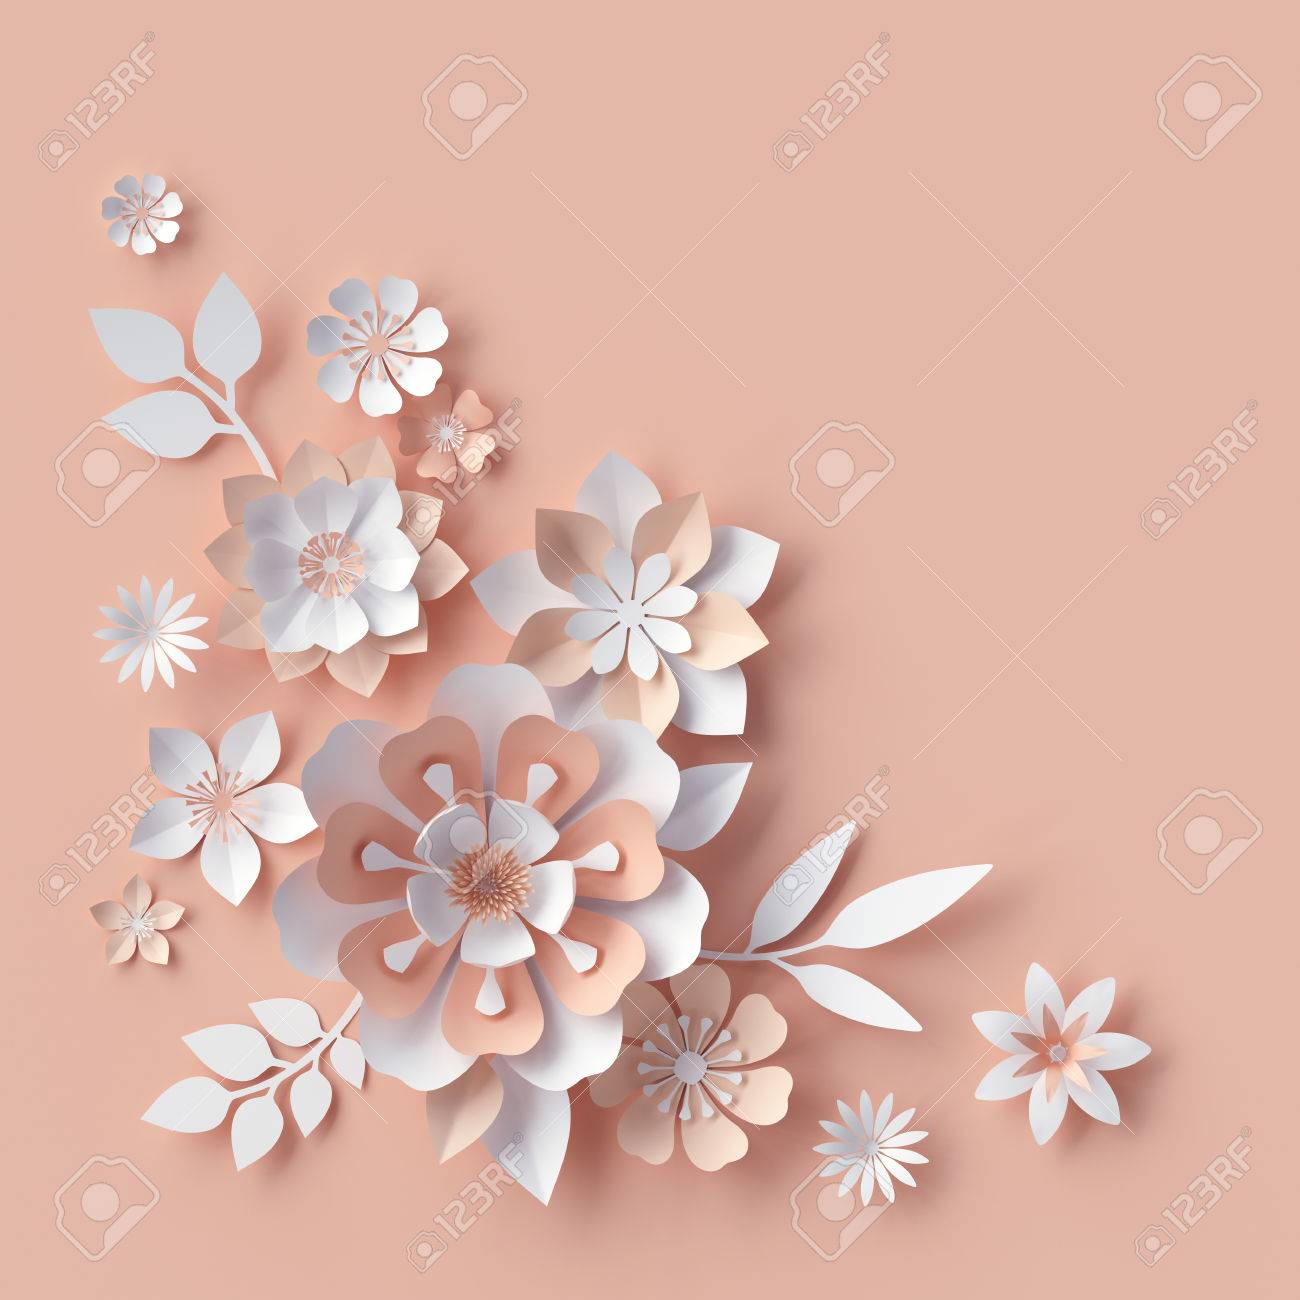 3d Render Abstract Paper Flowers Decorative Corner Peachy Stock